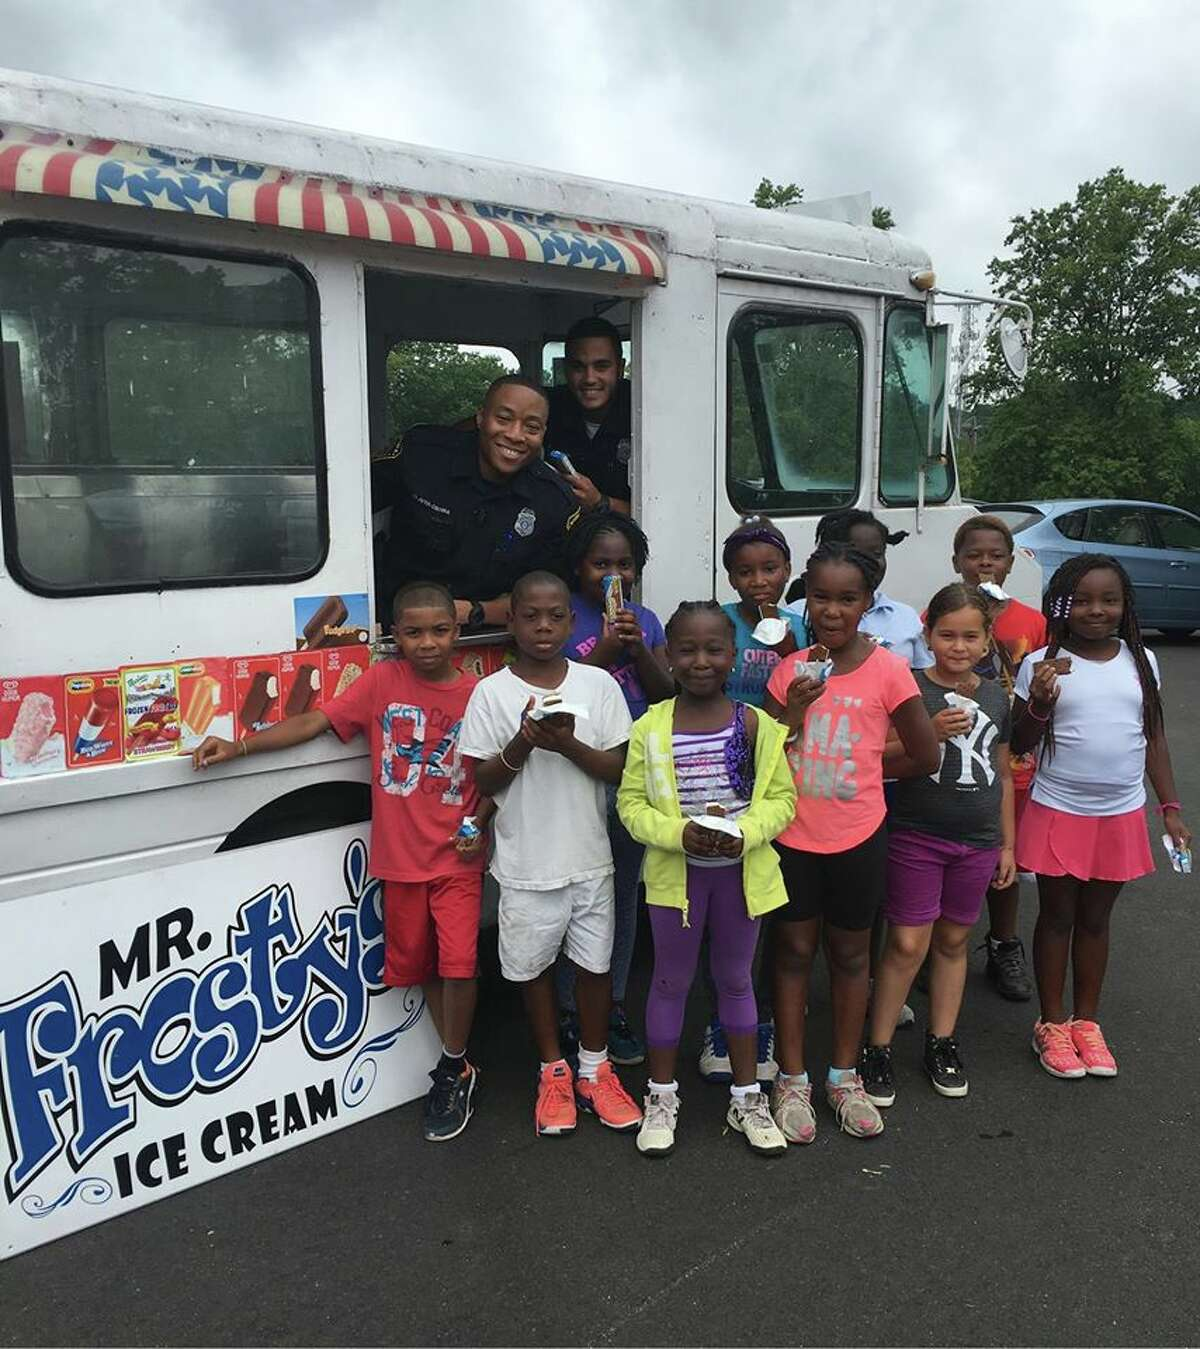 Hundreds of children were recently treated to a surprise delivery of frozen treats on Wednesday by Norwalk police officers and Mr. Frosty's Ice Cream.